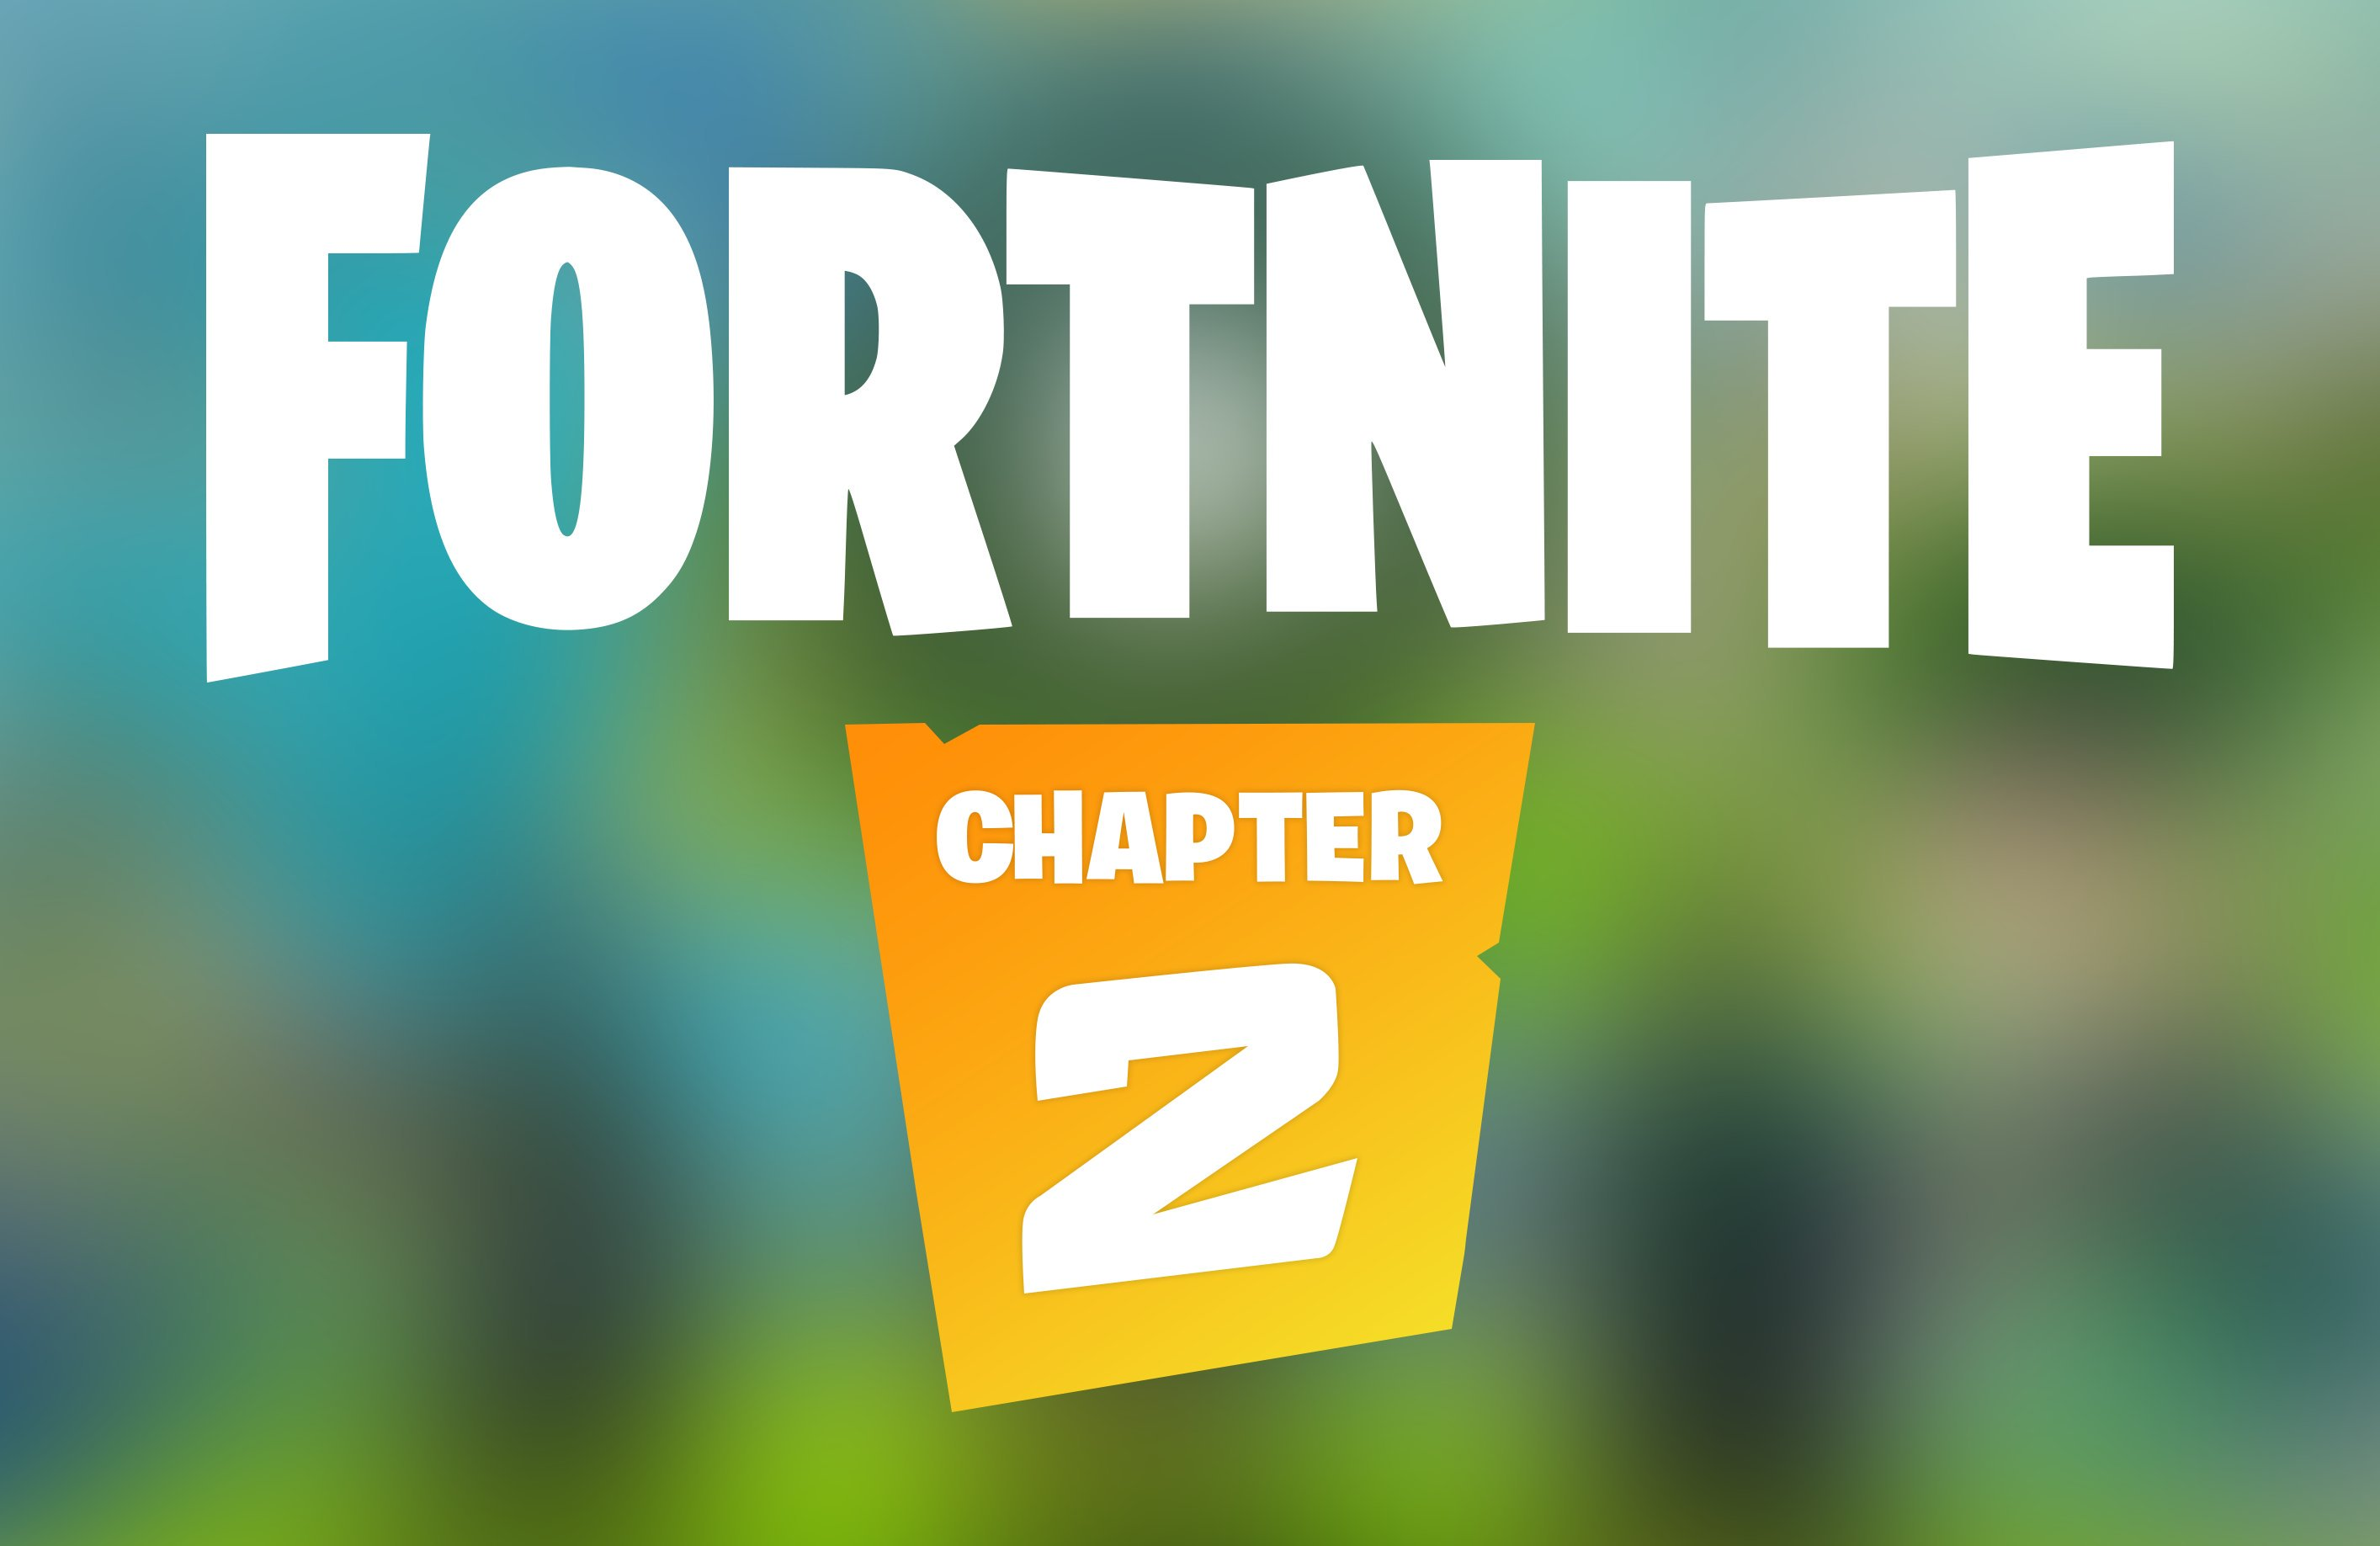 Fortnite's next season could be called Fortnite Chapter 2, according to new leaks